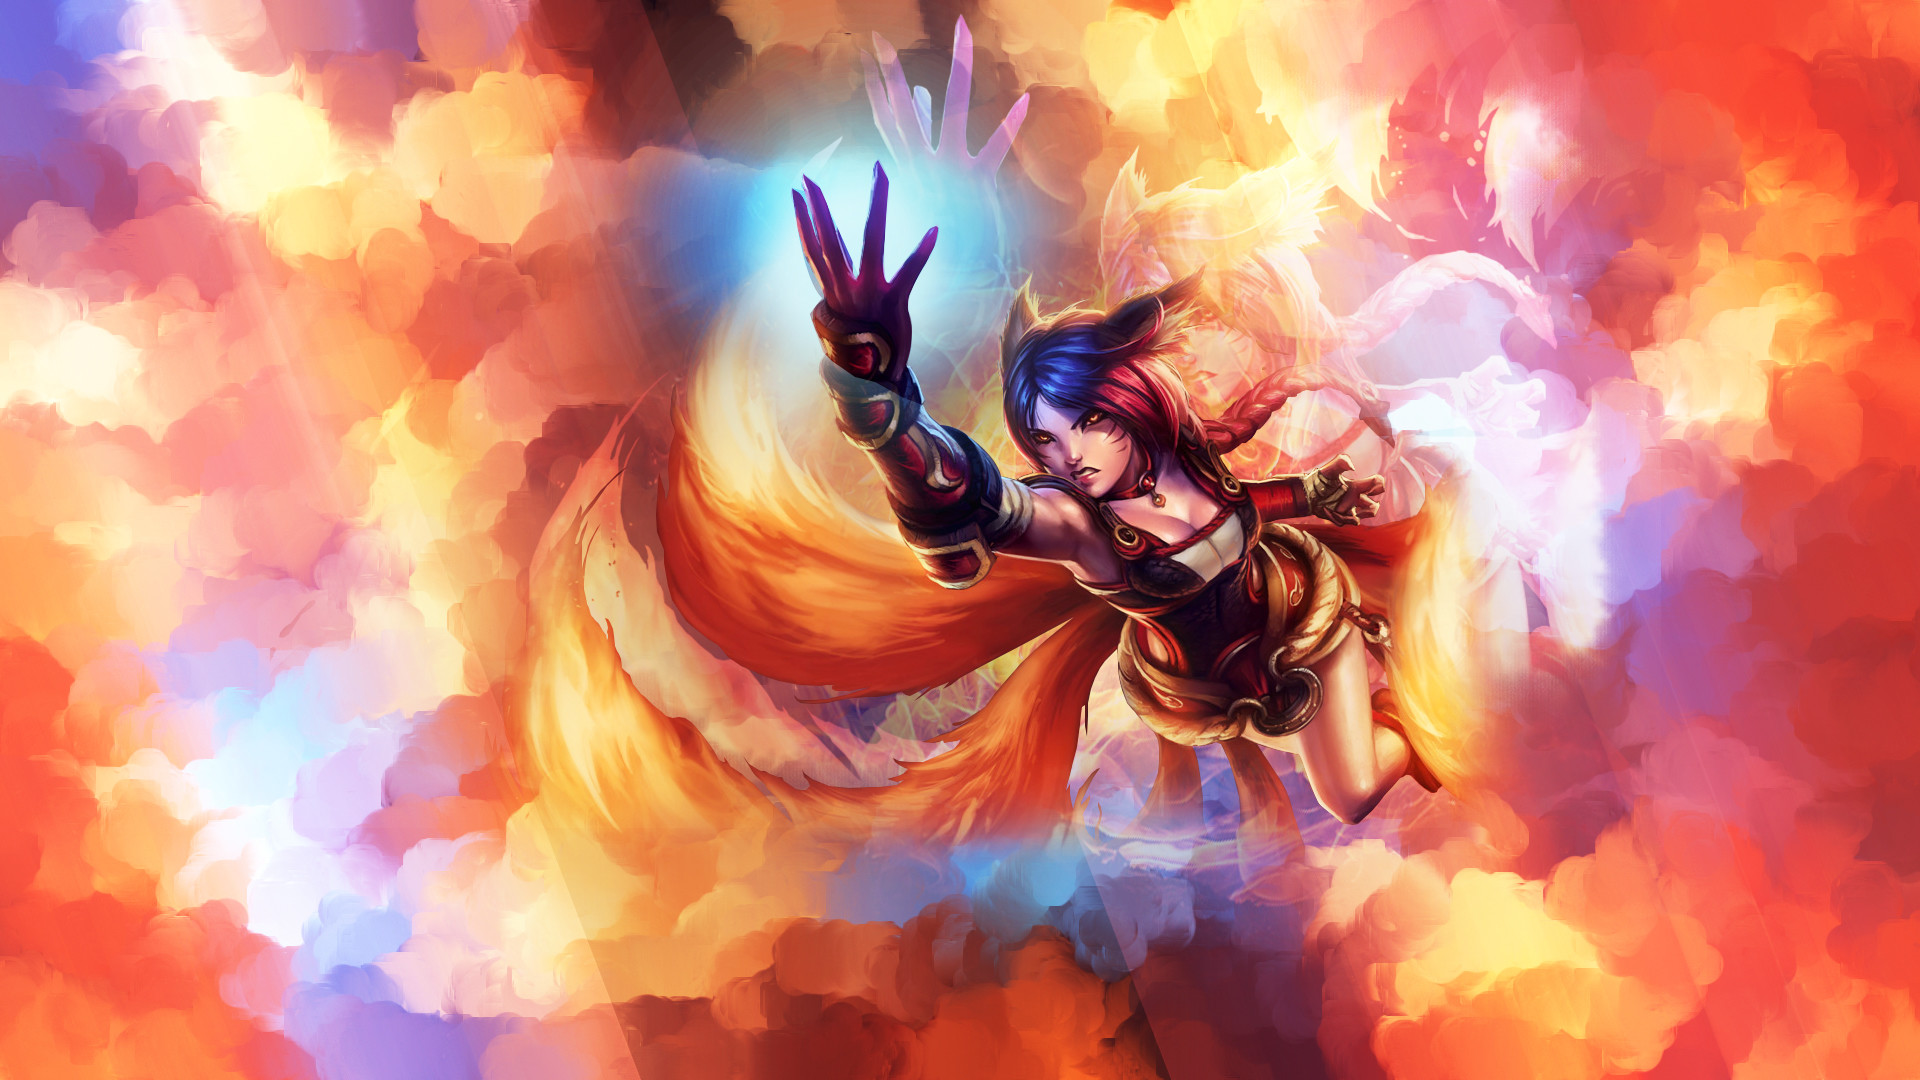 1920x1080 Foxfire Ahri Wallpaper by Platna Foxfire Ahri Wallpaper by Platna